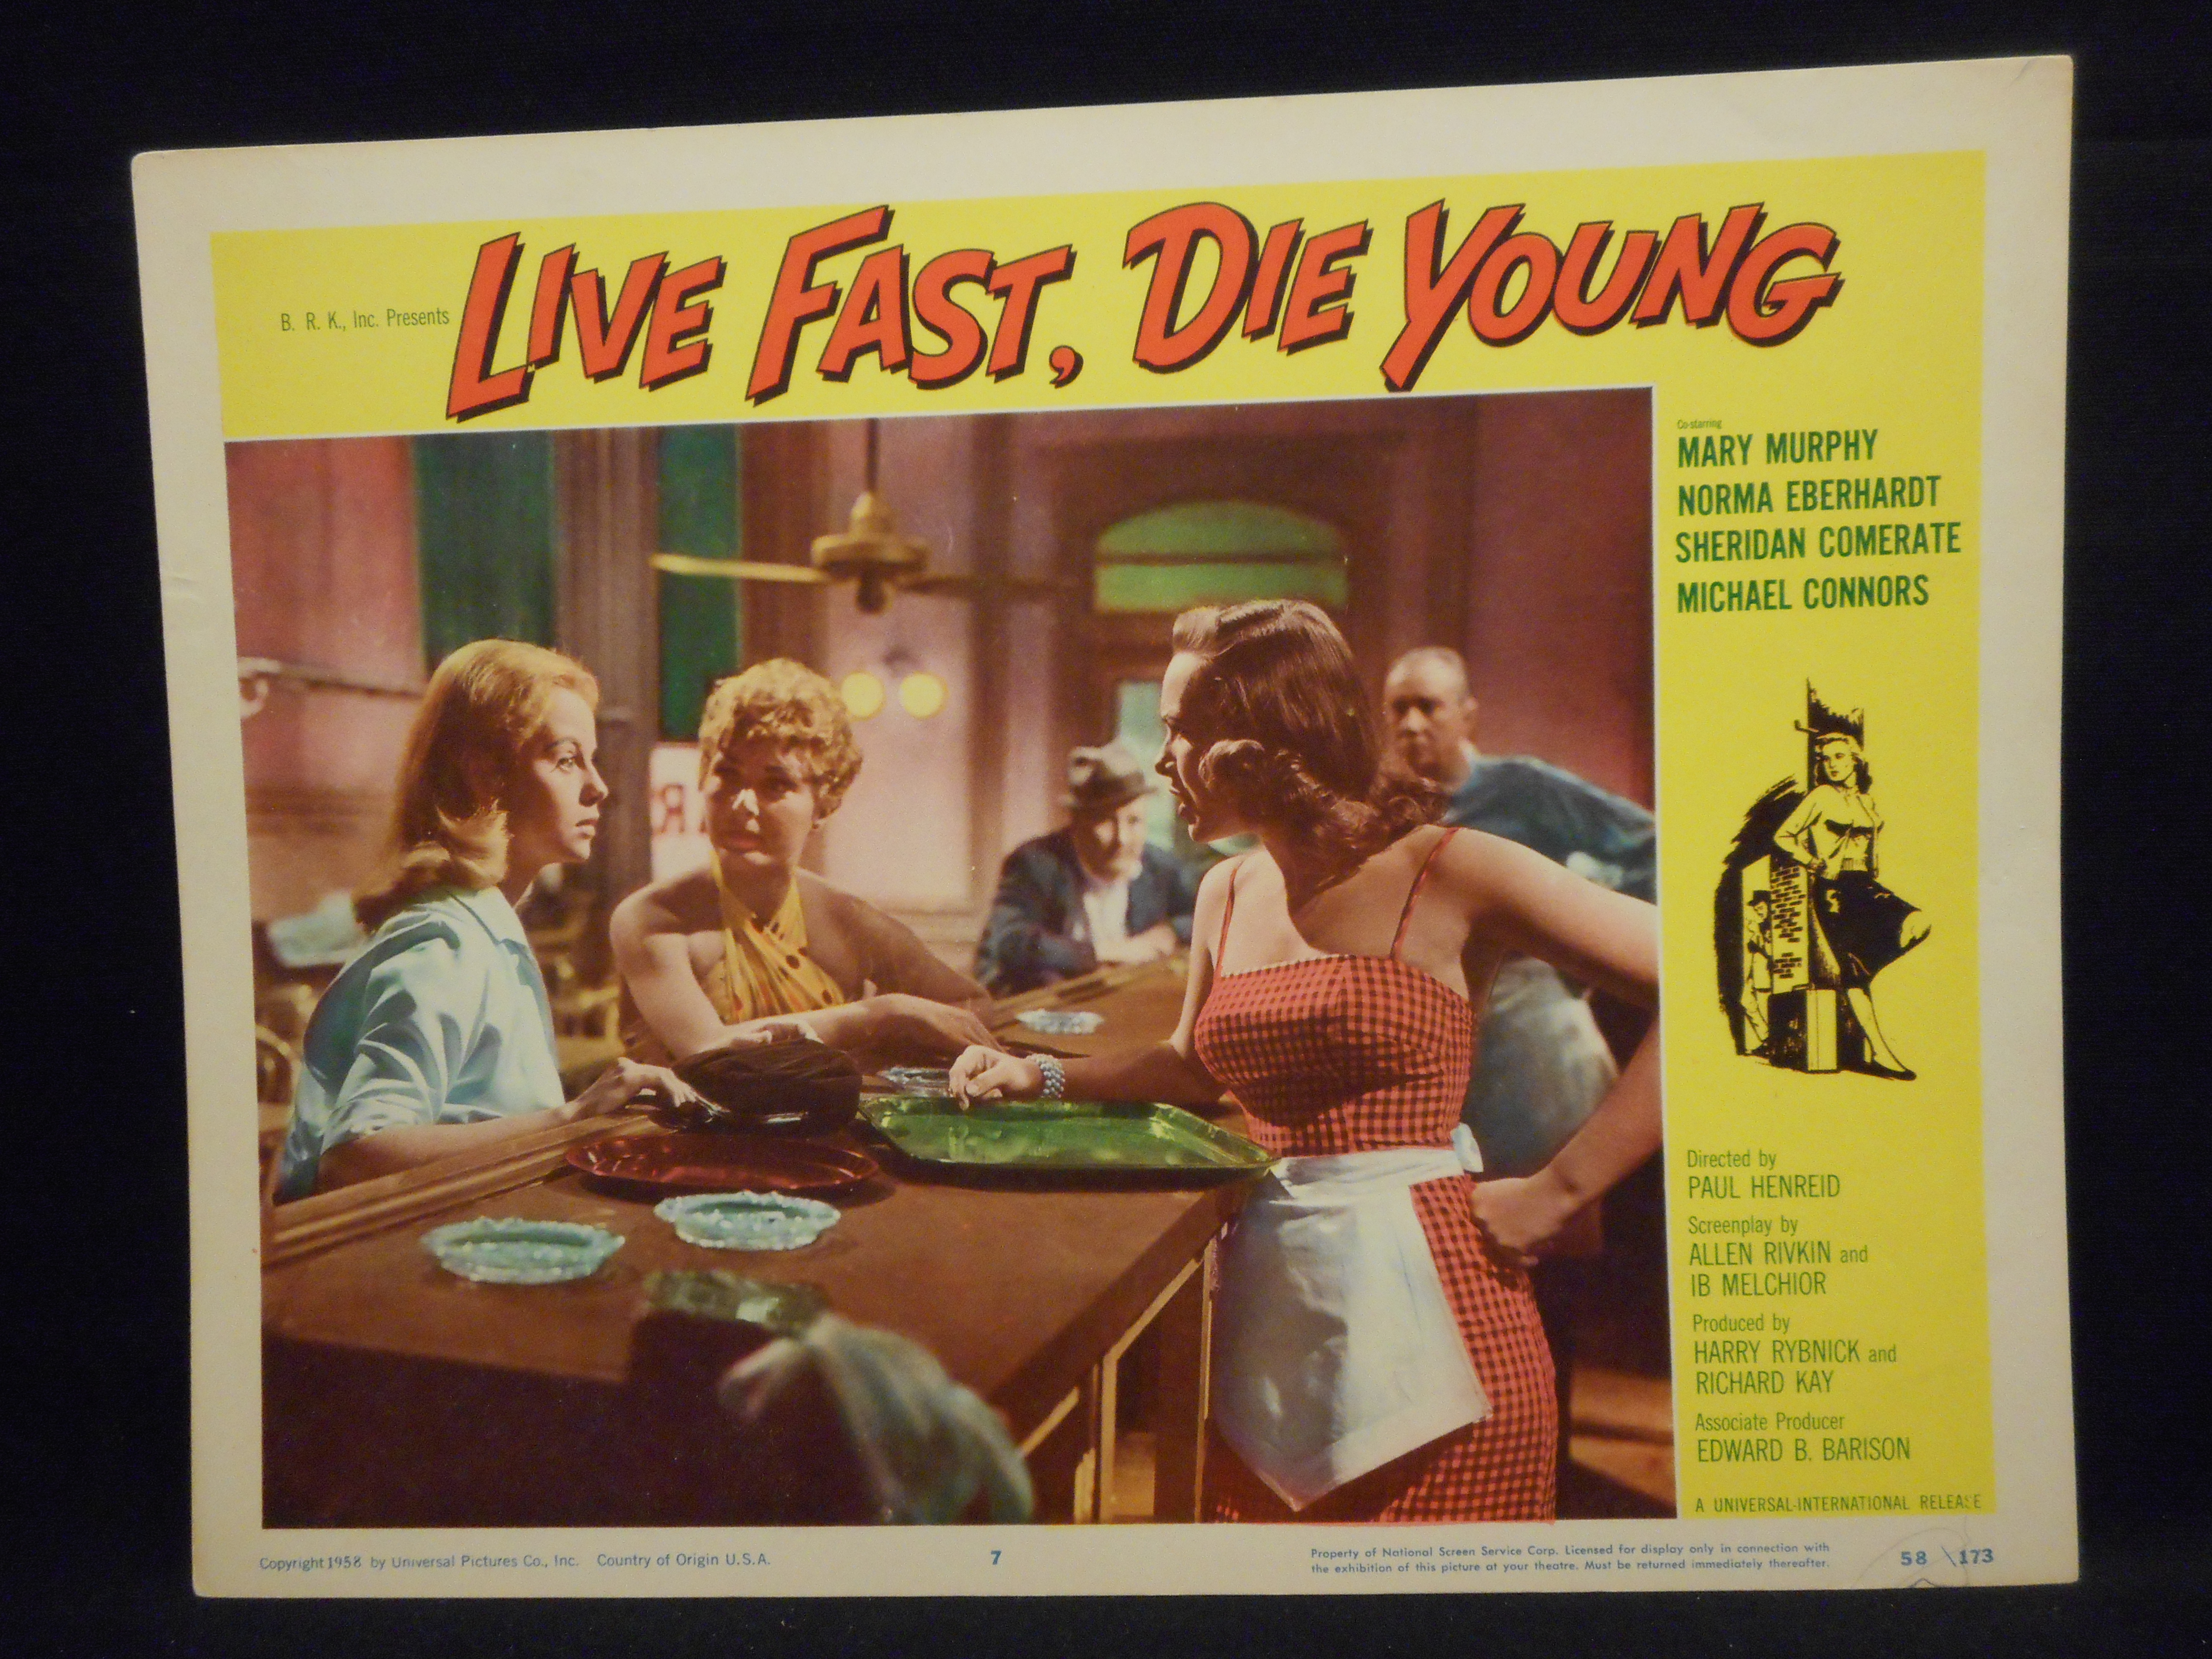 Norma Eberhardt, Peggy Maley, and Mary Murphy in Live Fast, Die Young (1958)